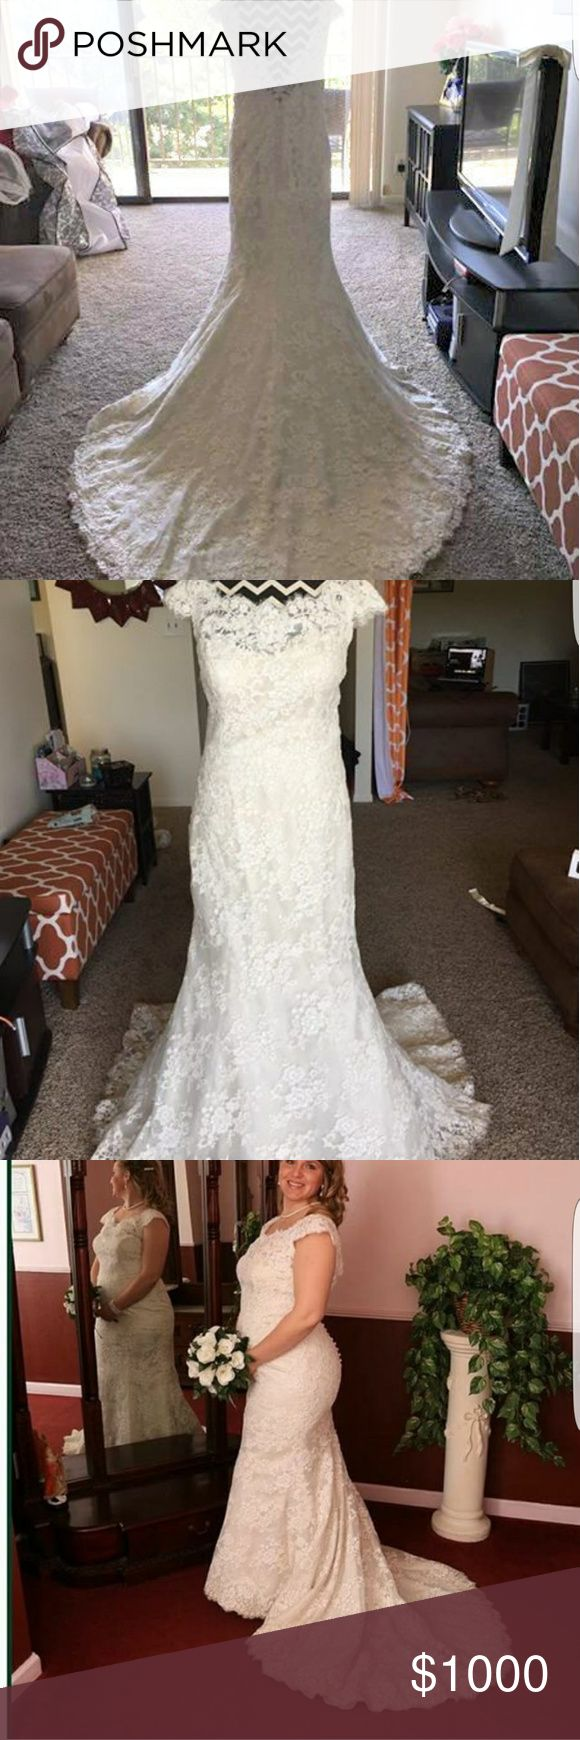 Allure Lace Wedding Dress Beautiful Allure Lace Wedding dress prestine condition.  Has been altered in hips, breast cups added. Bridal size 14 street size 10/12. Custom bustle, loop and button. Allure Bridals Dresses Wedding